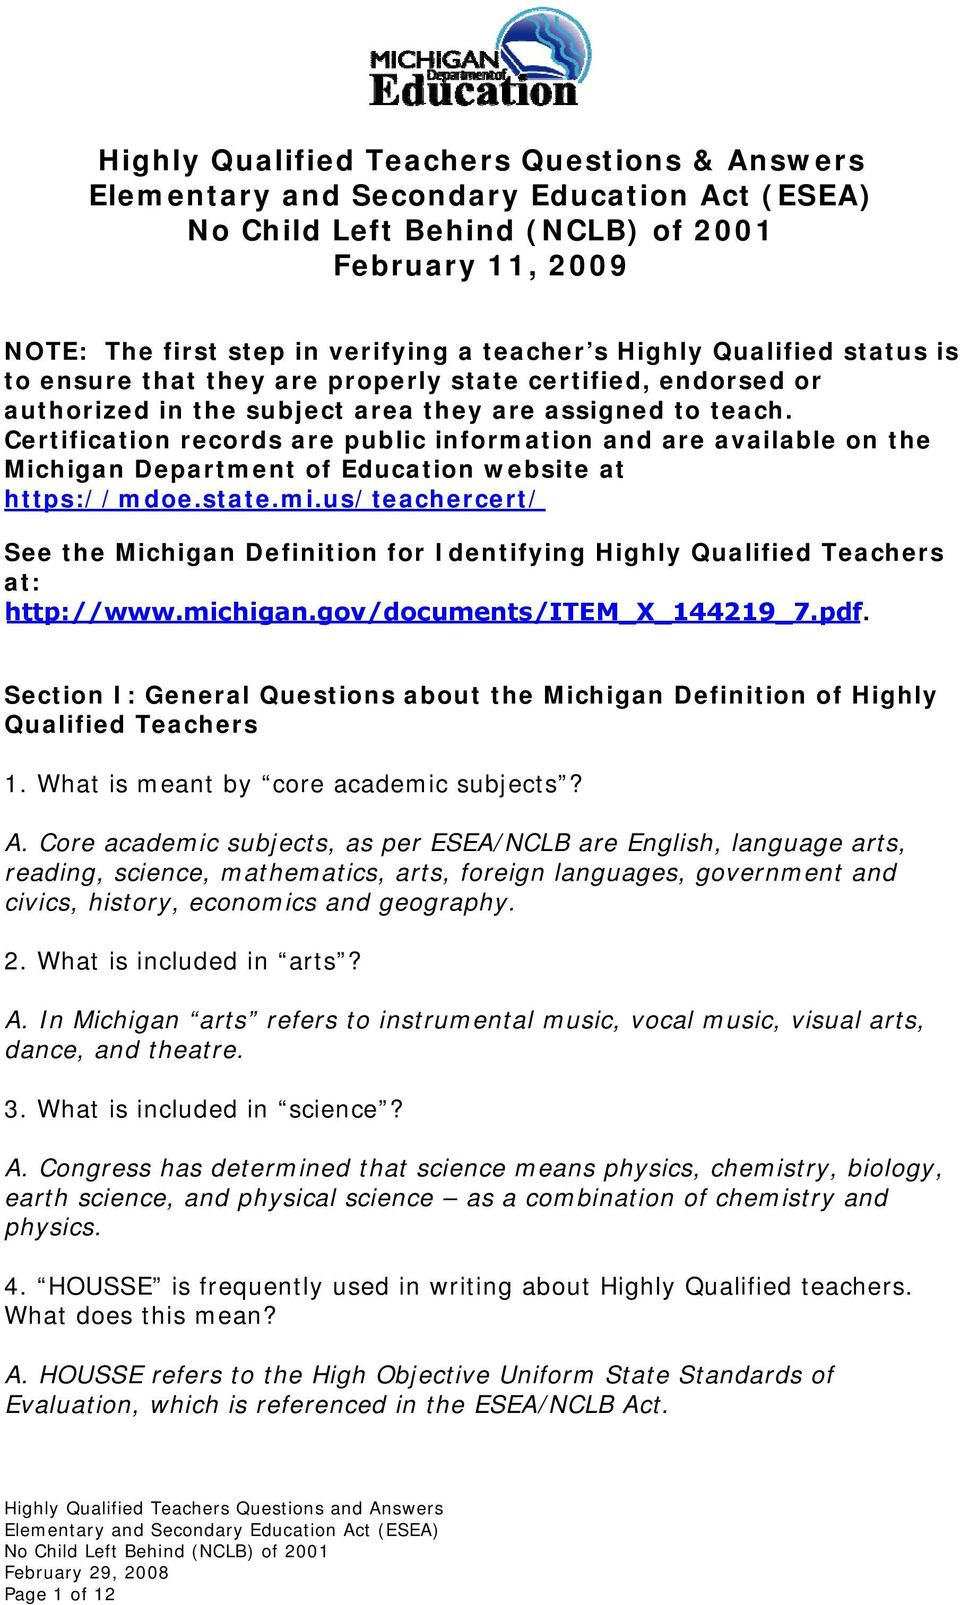 us/teachercert/ See the Michigan Definition for Identifying Highly Qualified Teachers at: http://www.michigan.gov/documents/item_x_144219_7.pdf.